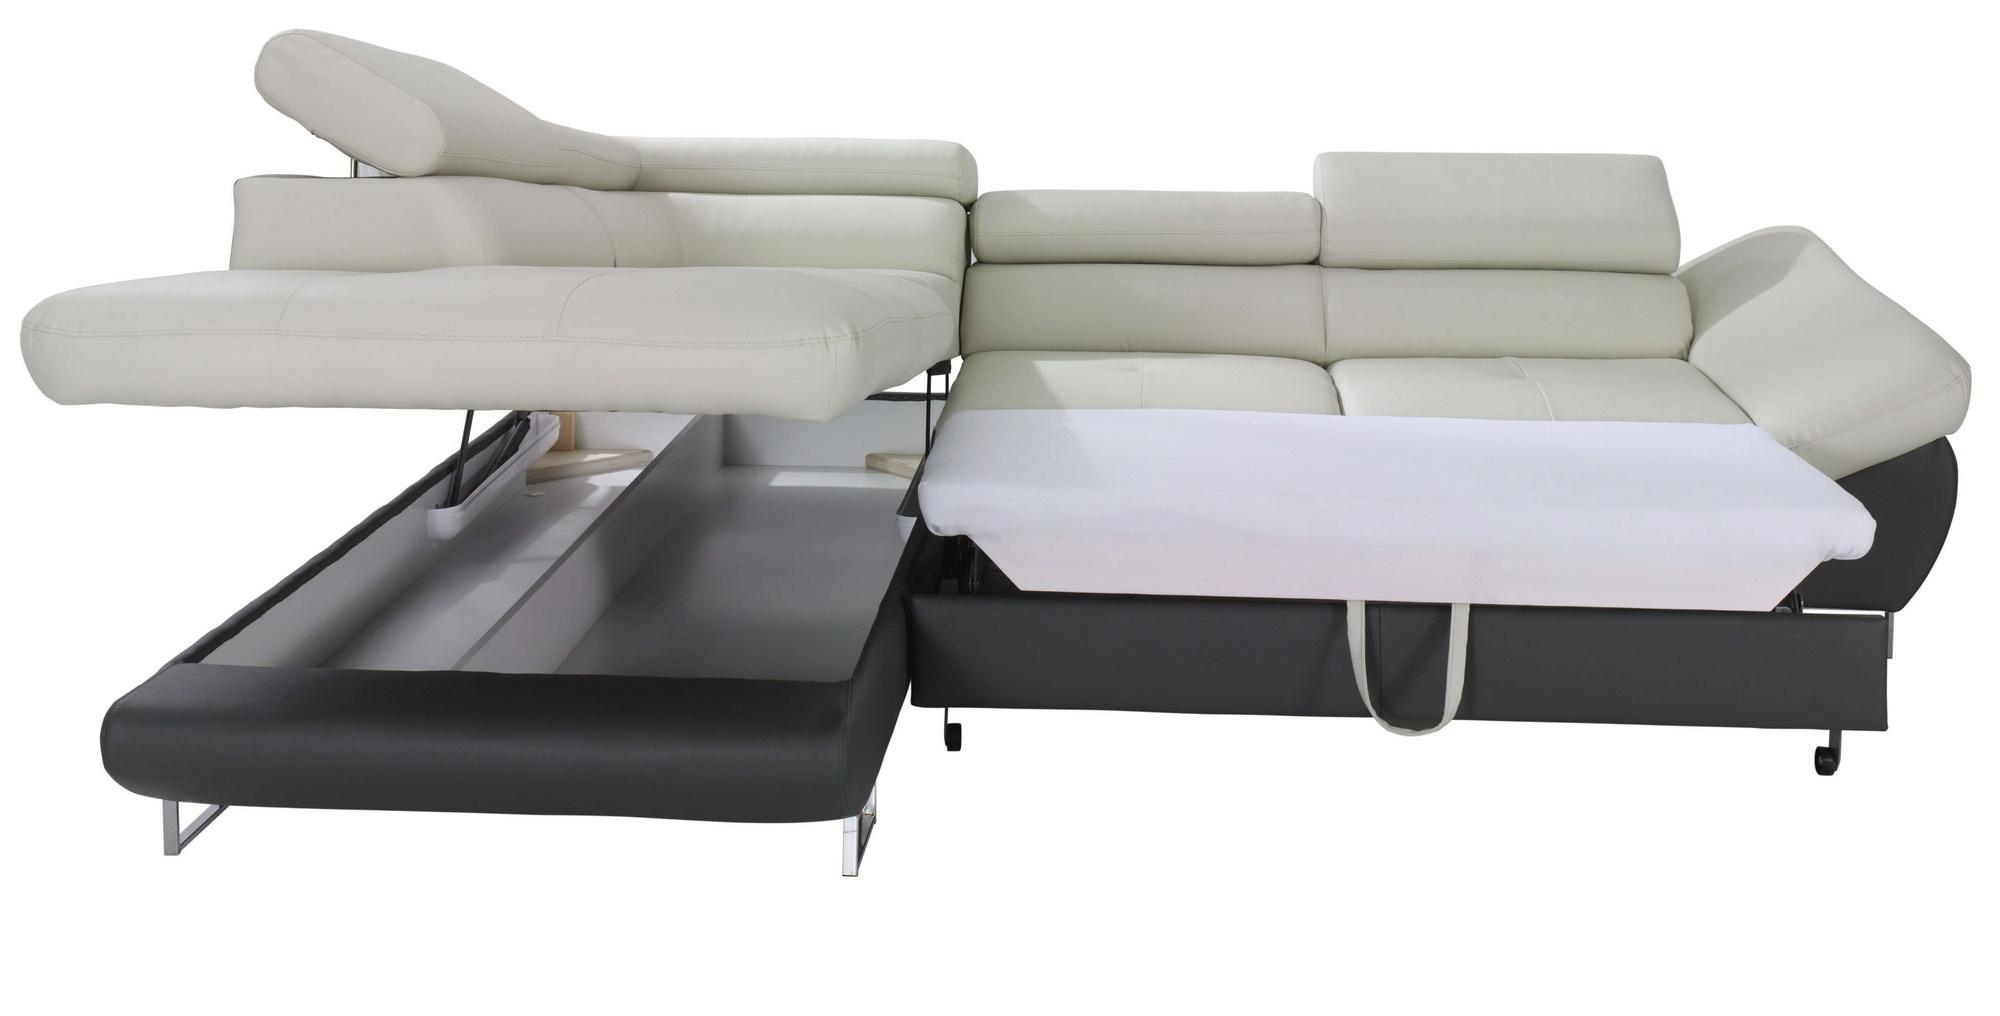 Fabio Sectional Sofa Sleeper With Storage, Creative Furniture In Sectional Sofa Bed With Storage (View 10 of 20)